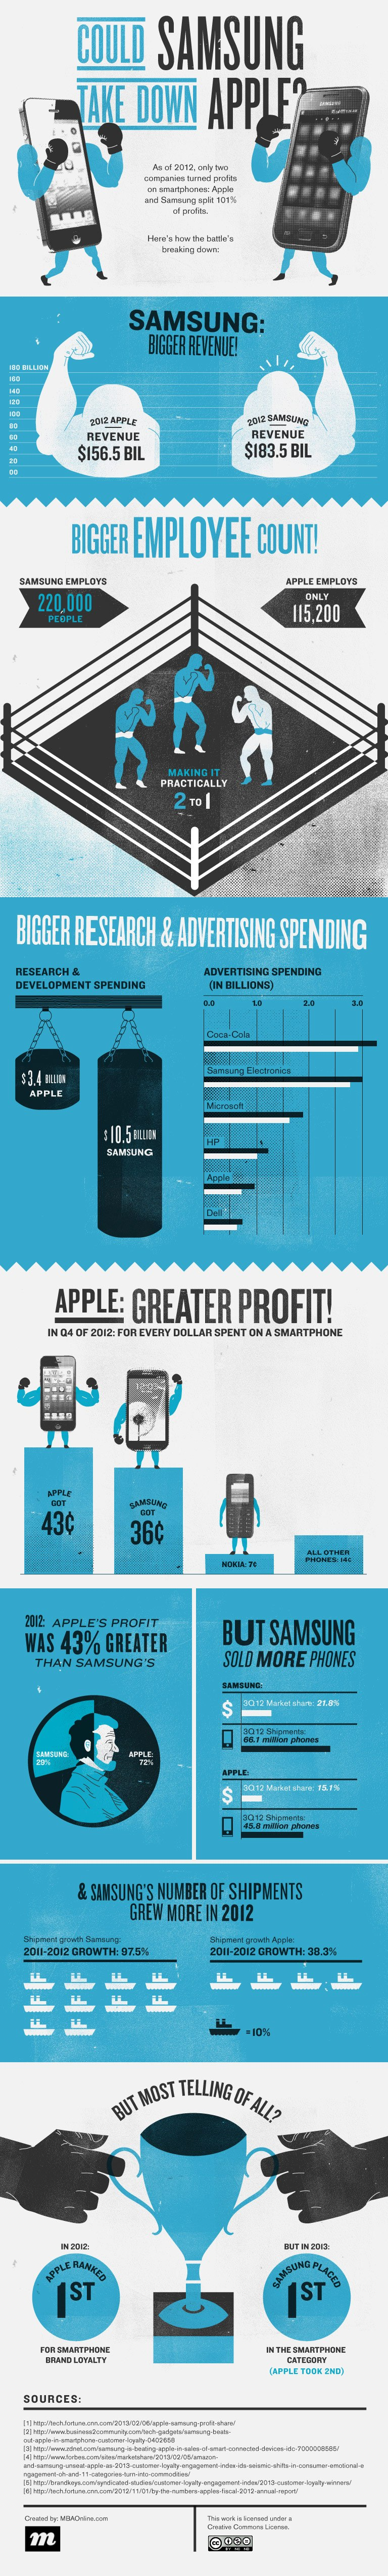 Annual-Profit-of-Apple